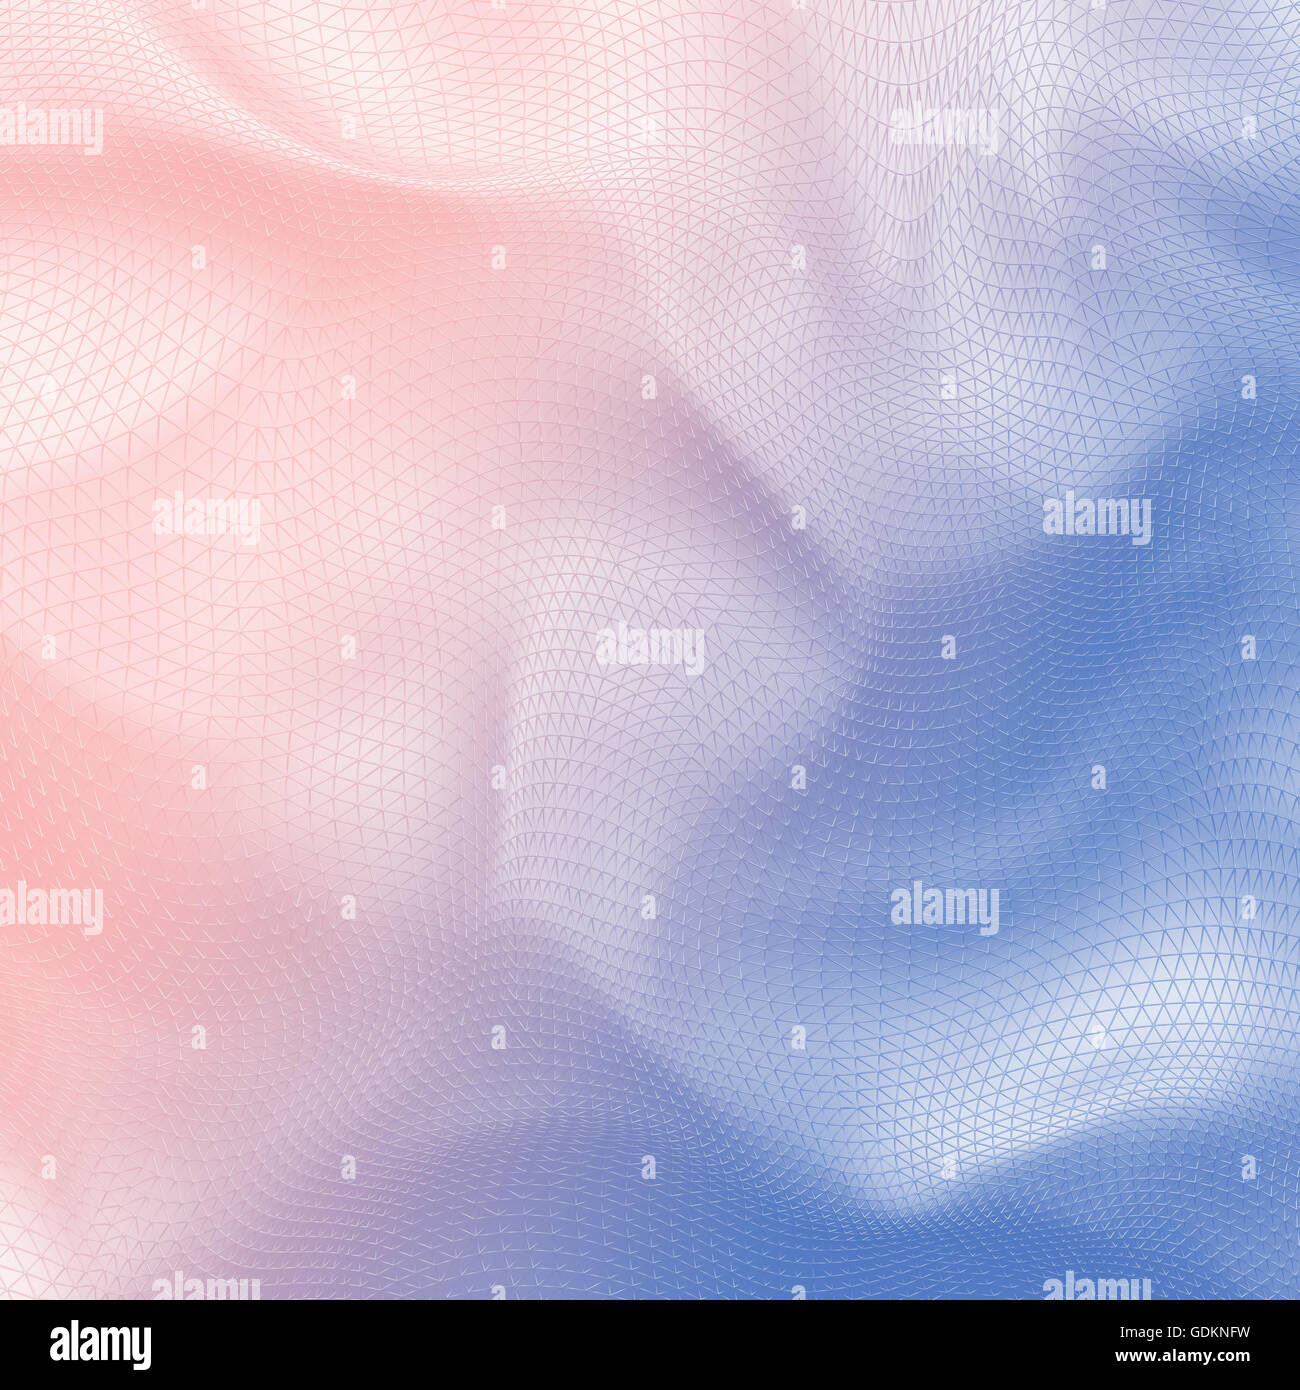 Pantone Color 2016 Abstract 3d Pale 2016 Pantone Color Mix Rose Quartz And Serenity